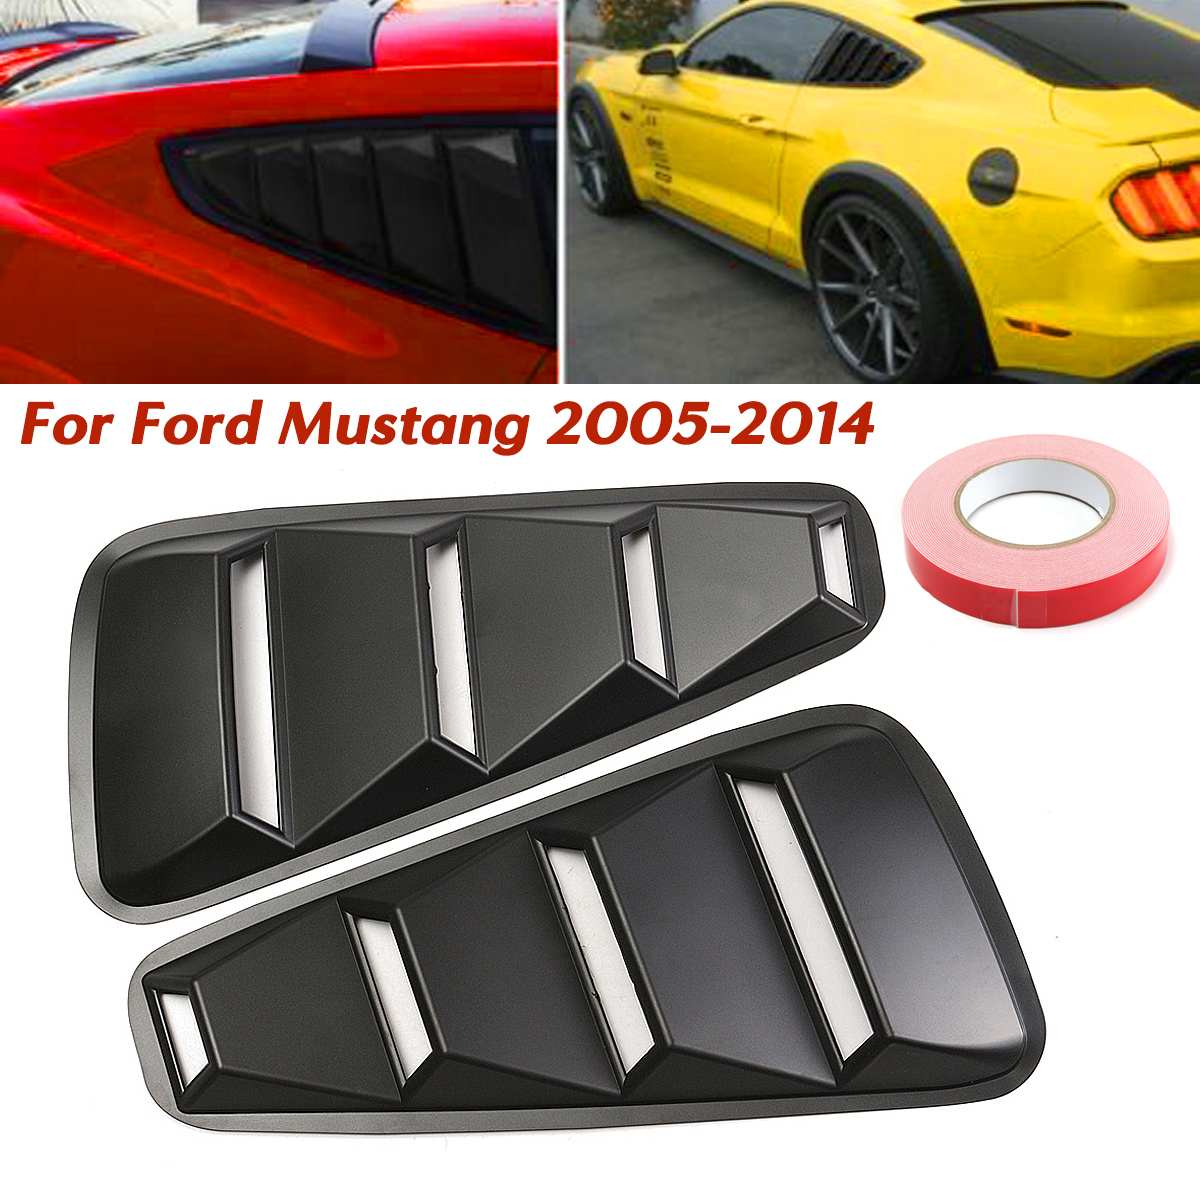 Ford Mustang Hood Vent Louvers imitation Decals 1994 1995 1996 1997 1998 1999